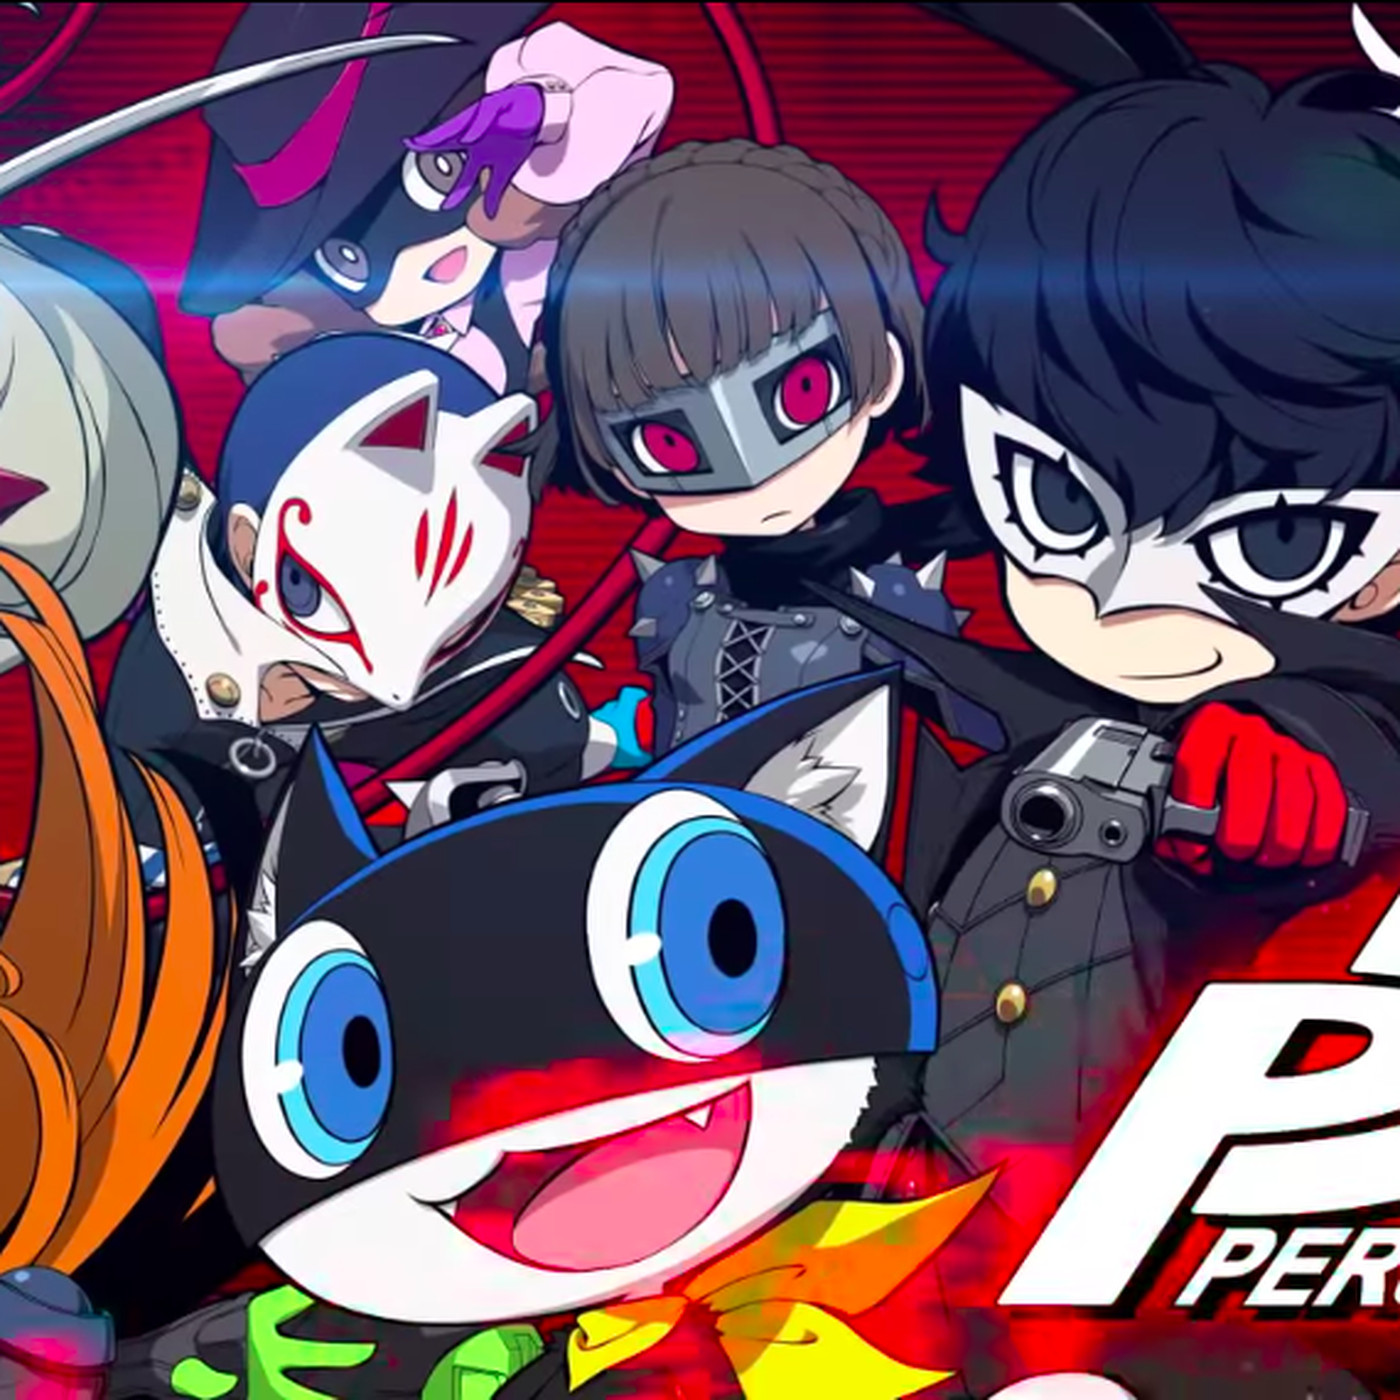 Persona Q2: Cinema Labyrinth launches in Japan this fall